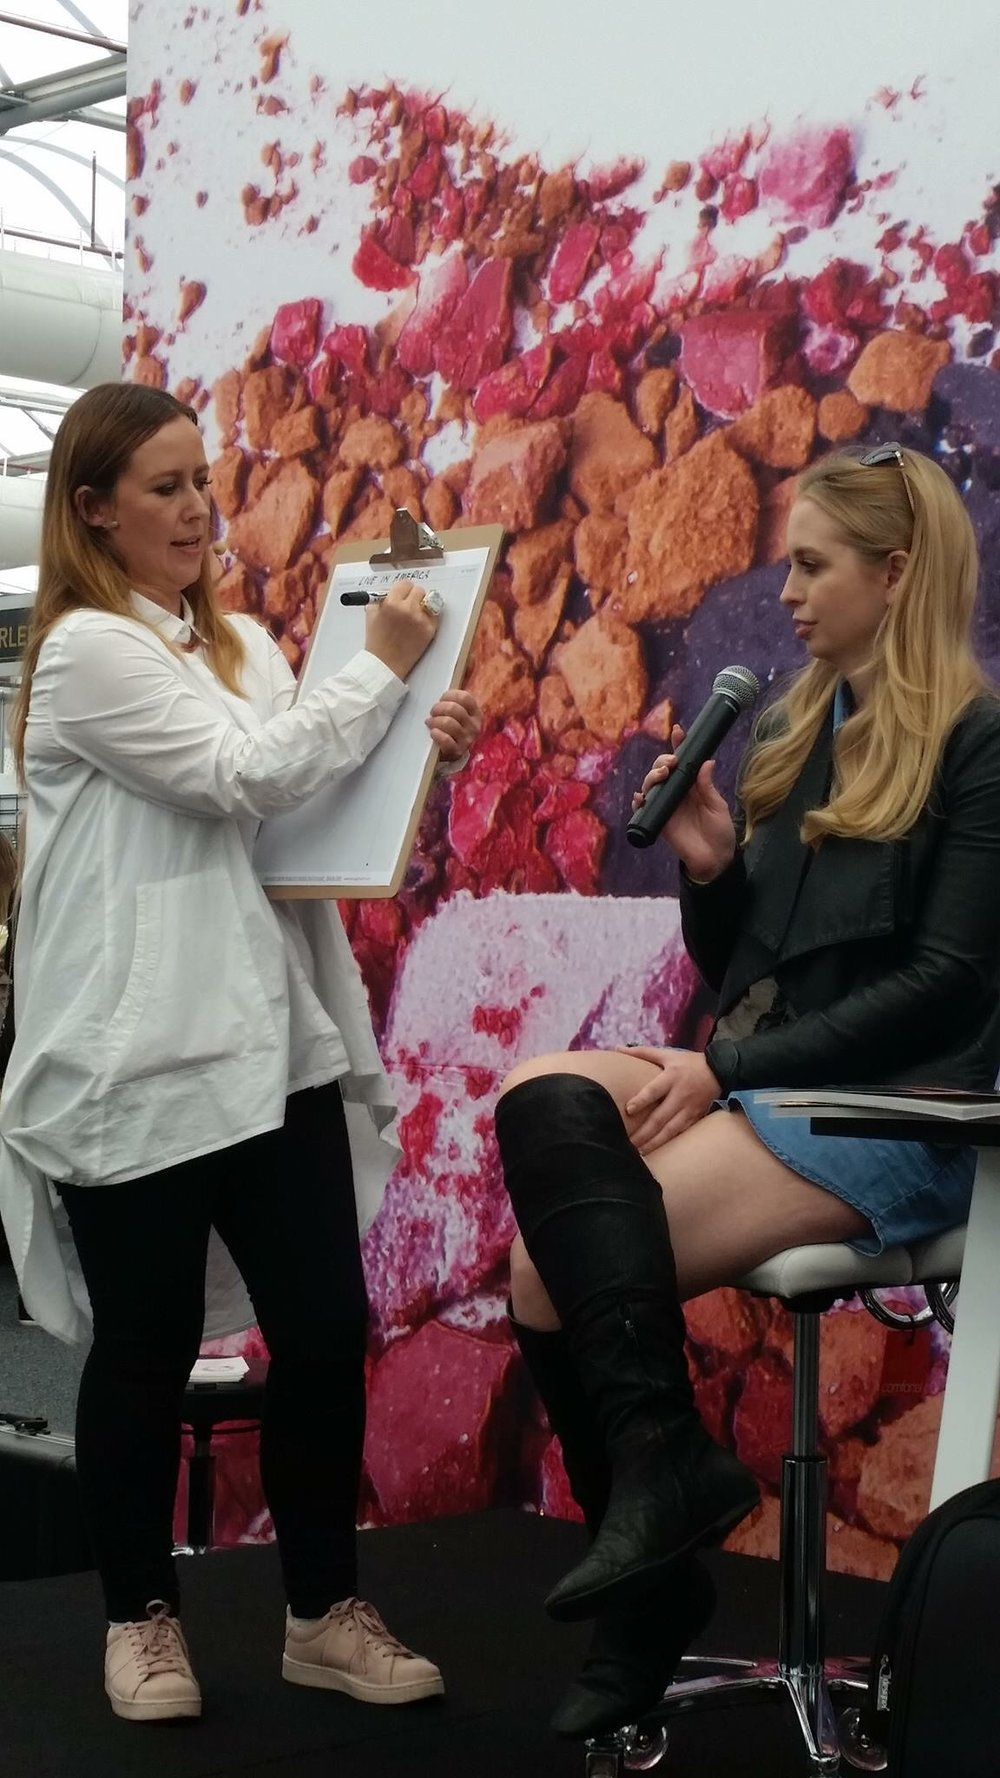 Talking about MUA Bootcamp for the first time since the books release at Beauty Expo... the lovely Sheri Vegas from Makeup Weapons volunteering to do Milestone Mapping with me on stage x